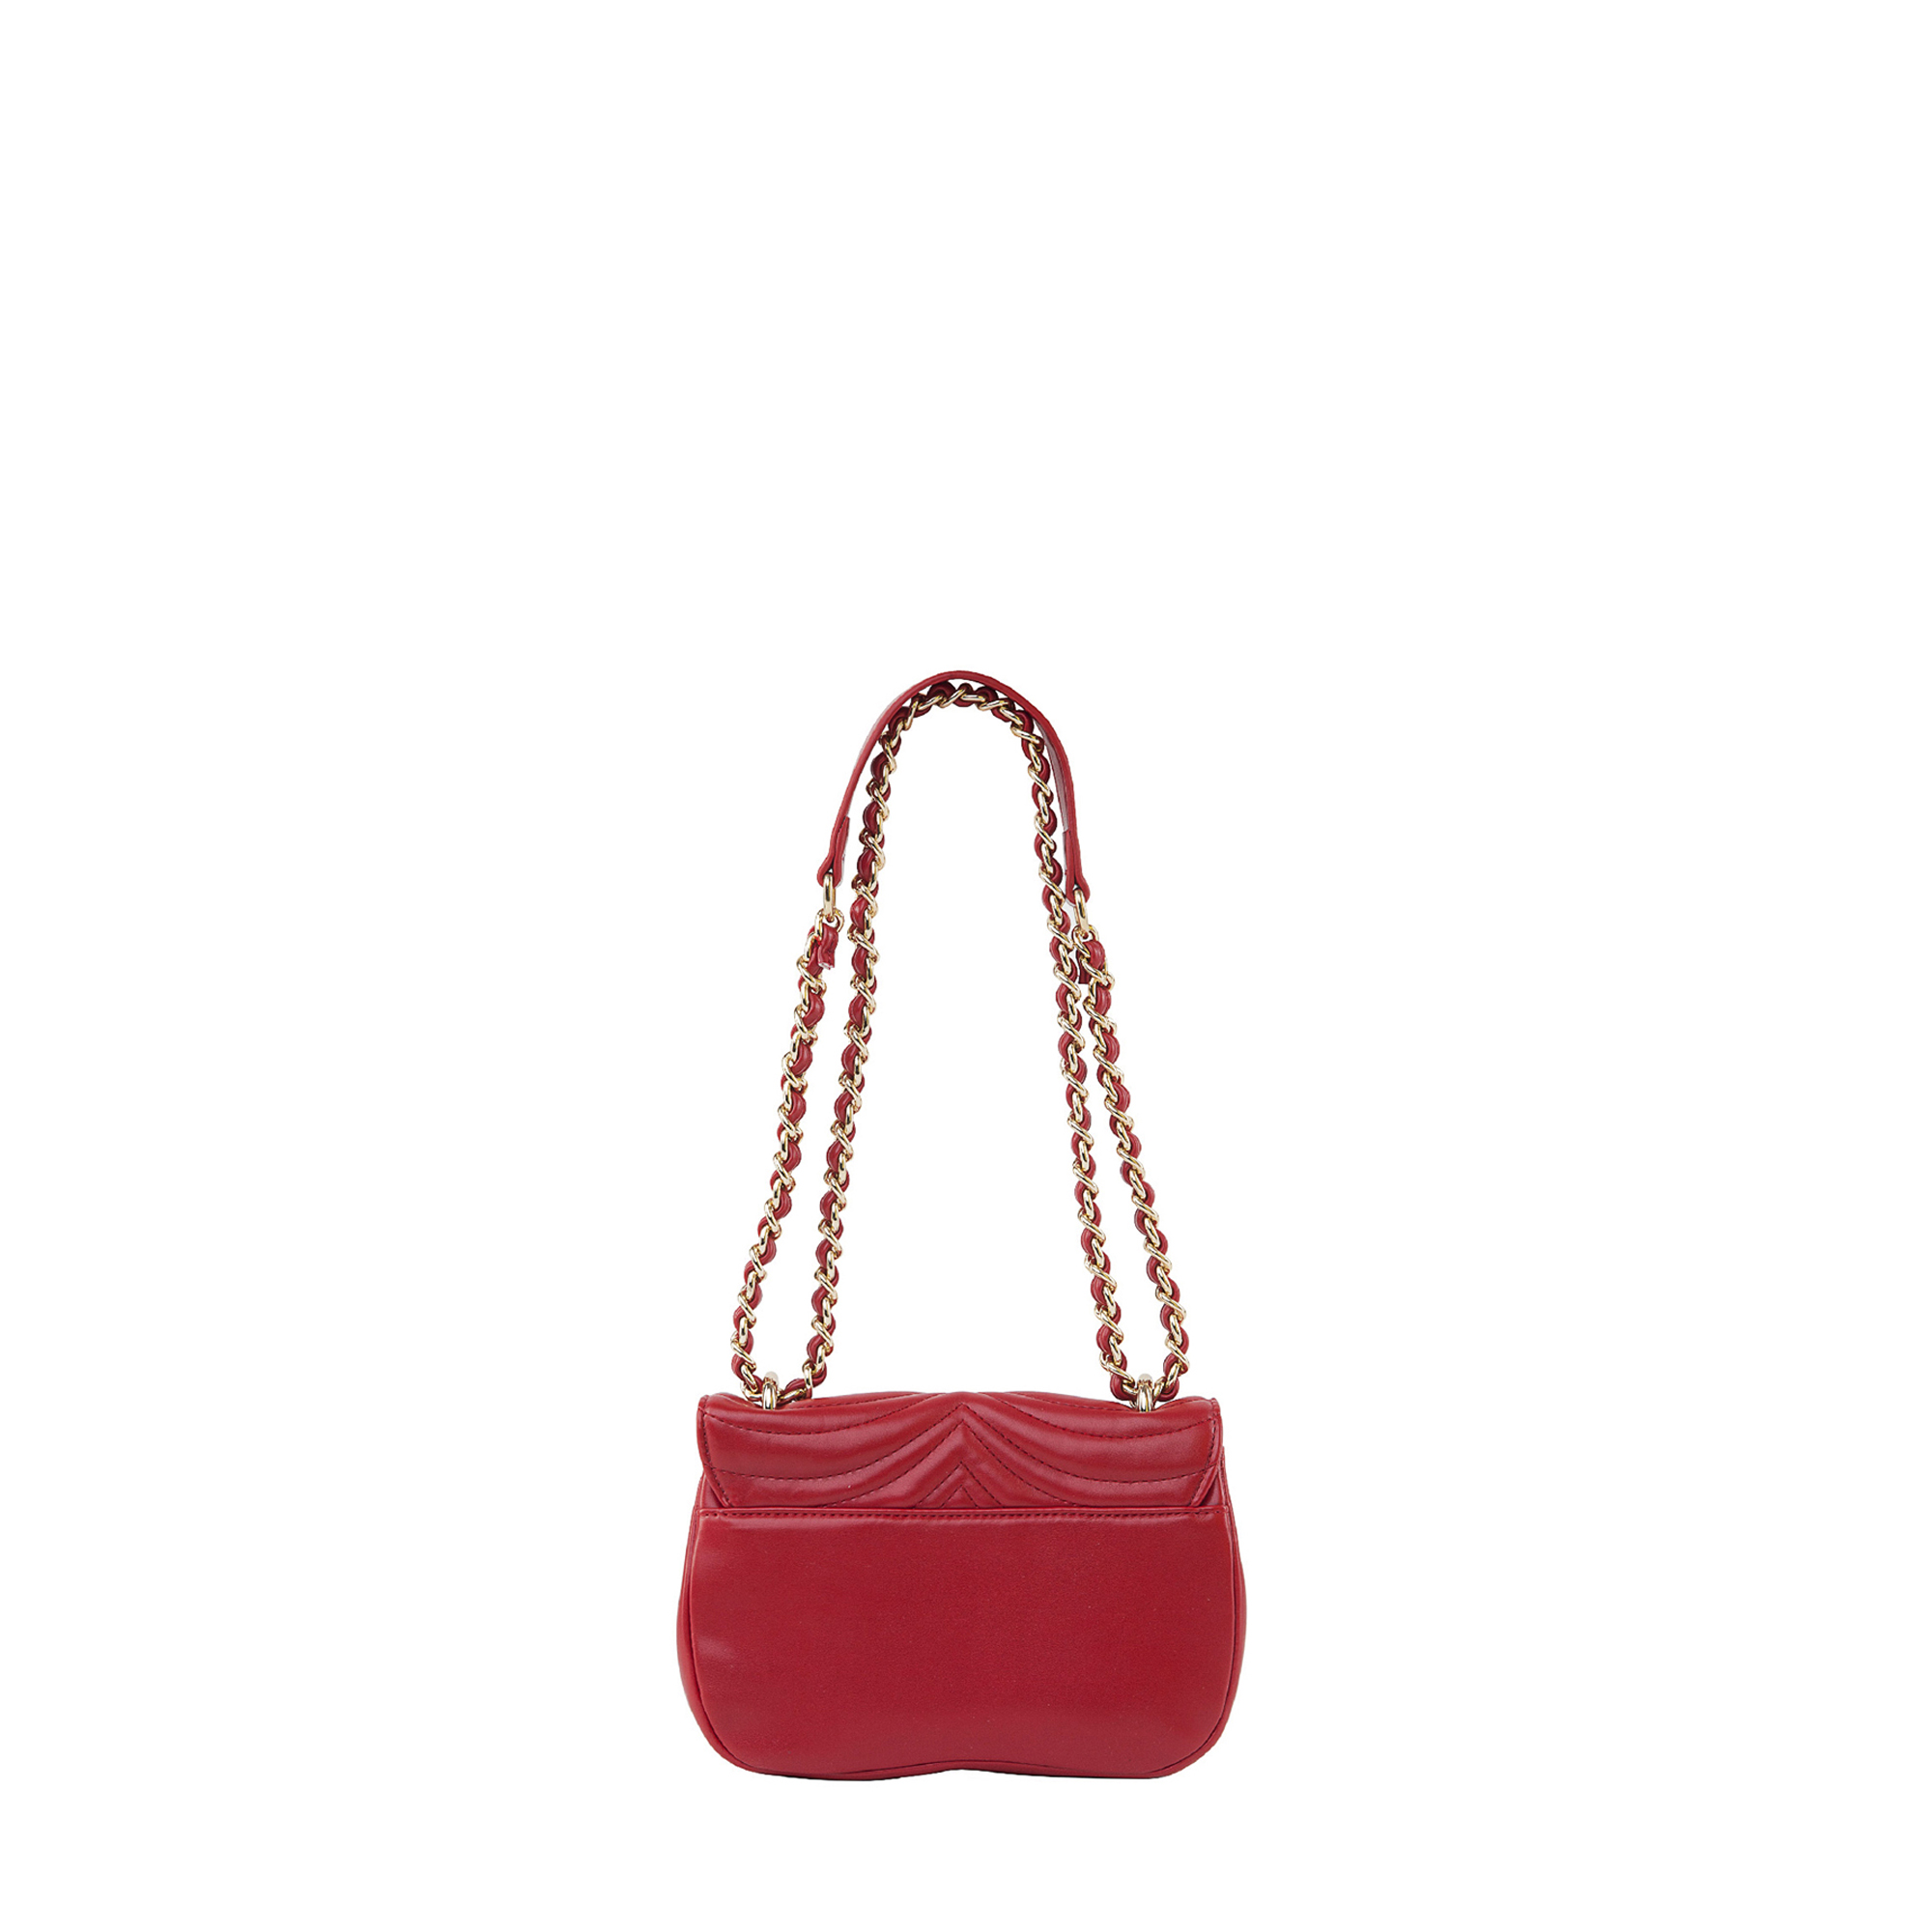 SHOULDER BAG - GBDA1103 - GAELLE PARIS